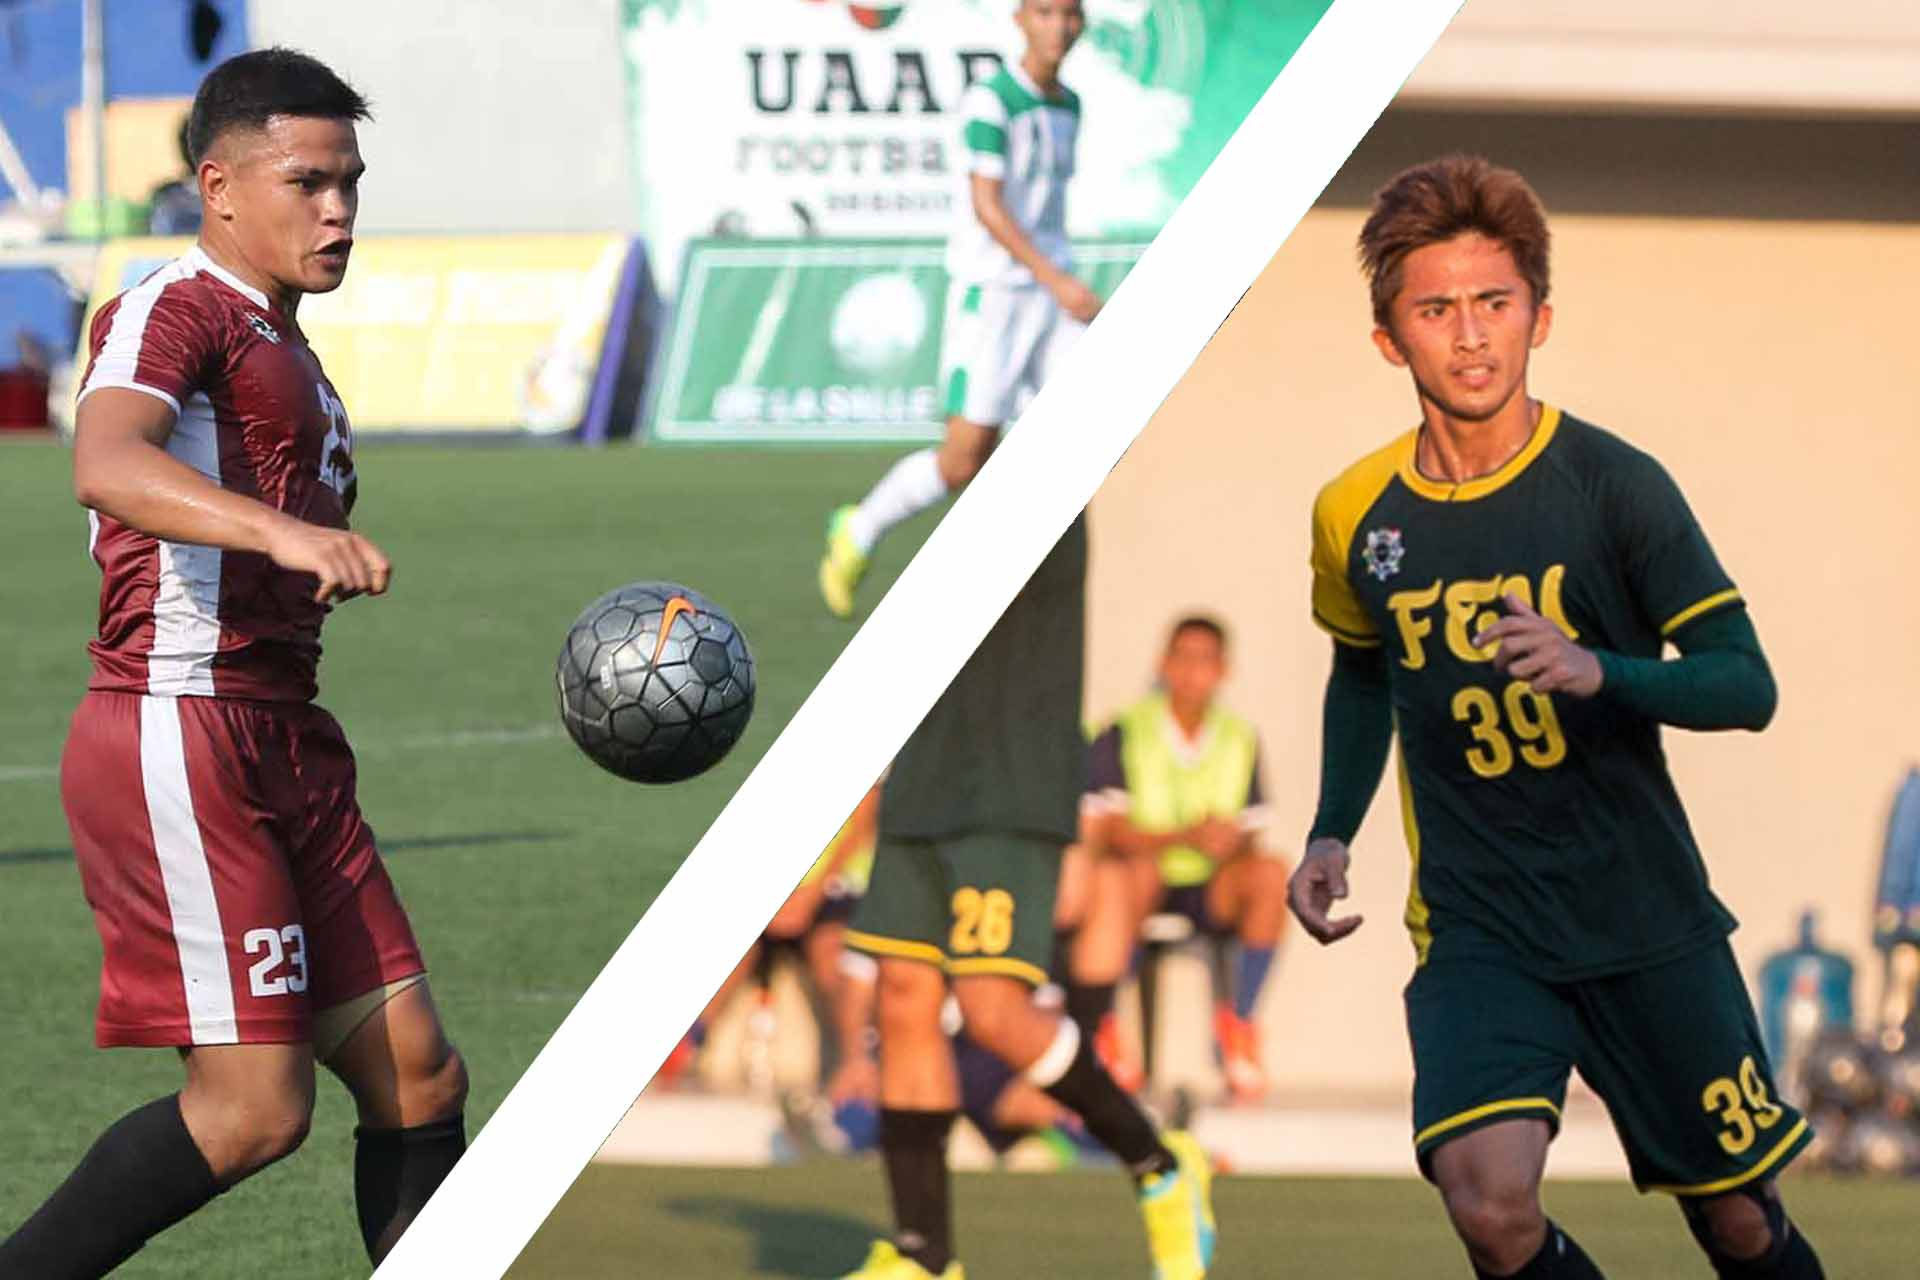 Tiebreaker Times UAAP stars hope for future Azkals call-ups FEU Football News Philippine Azkals UAAP UP  UAAP Season 78 Men's Football UAAP Season 78 Thomas Dooley Paolo Bugas Daniel Gadia